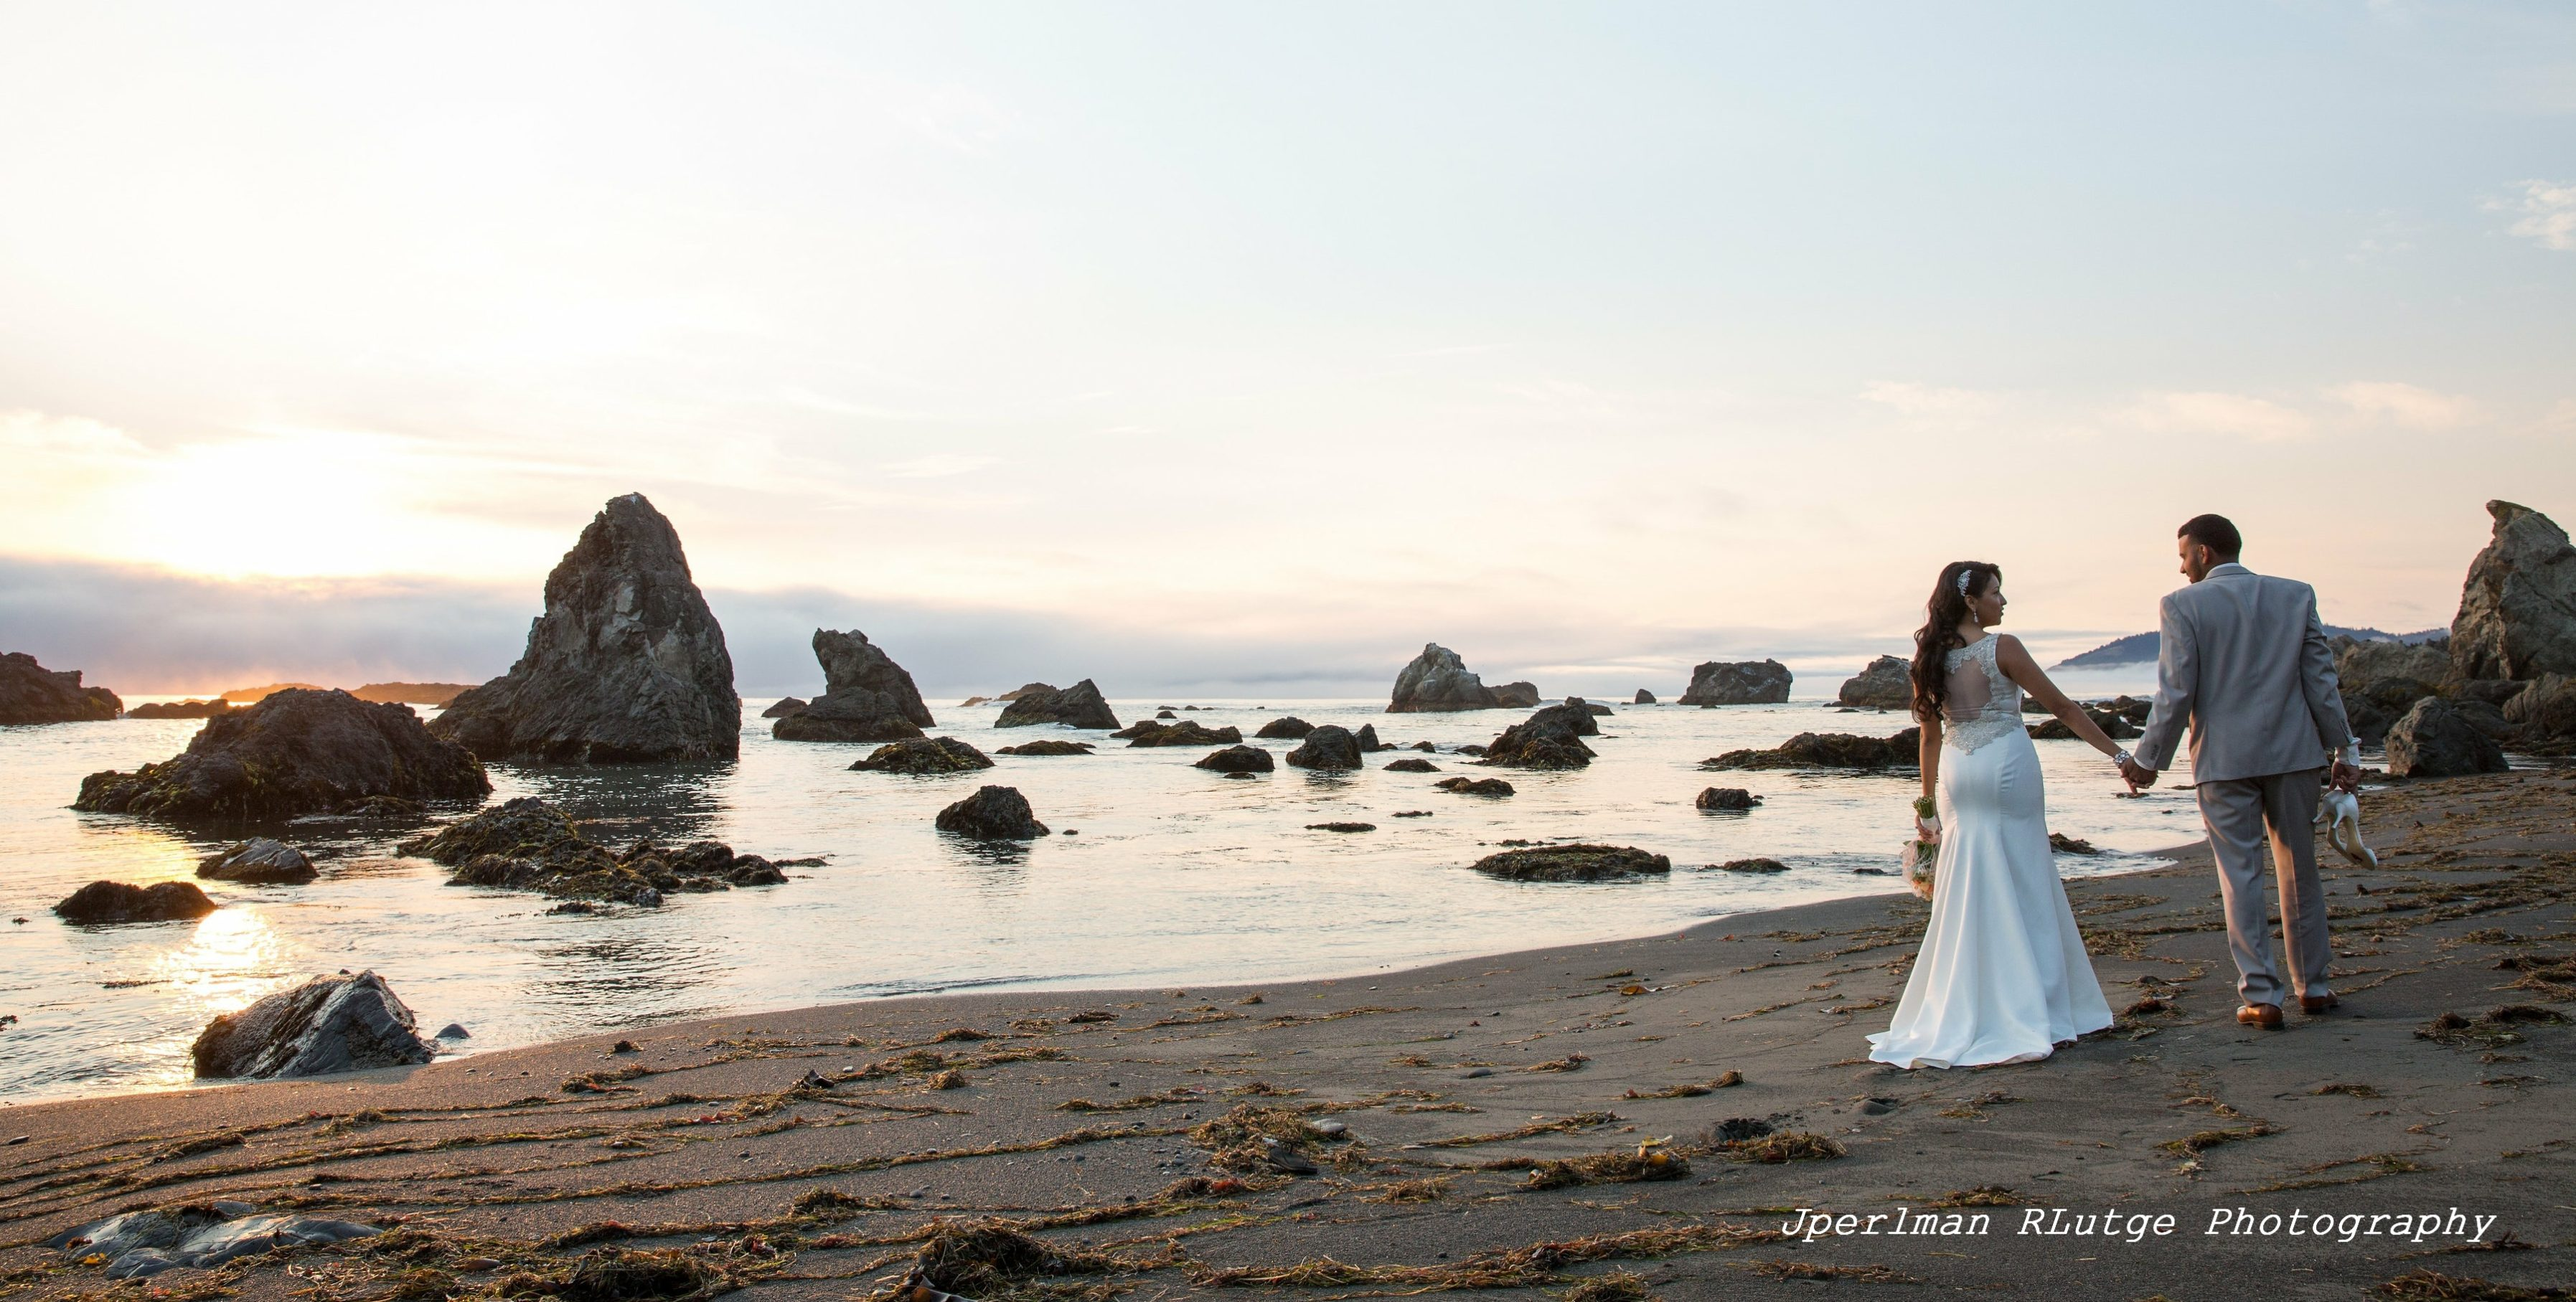 Johana and Isaac, after their Elope Mendocino wedding, stroll on the beach at Westport as the sun sets.